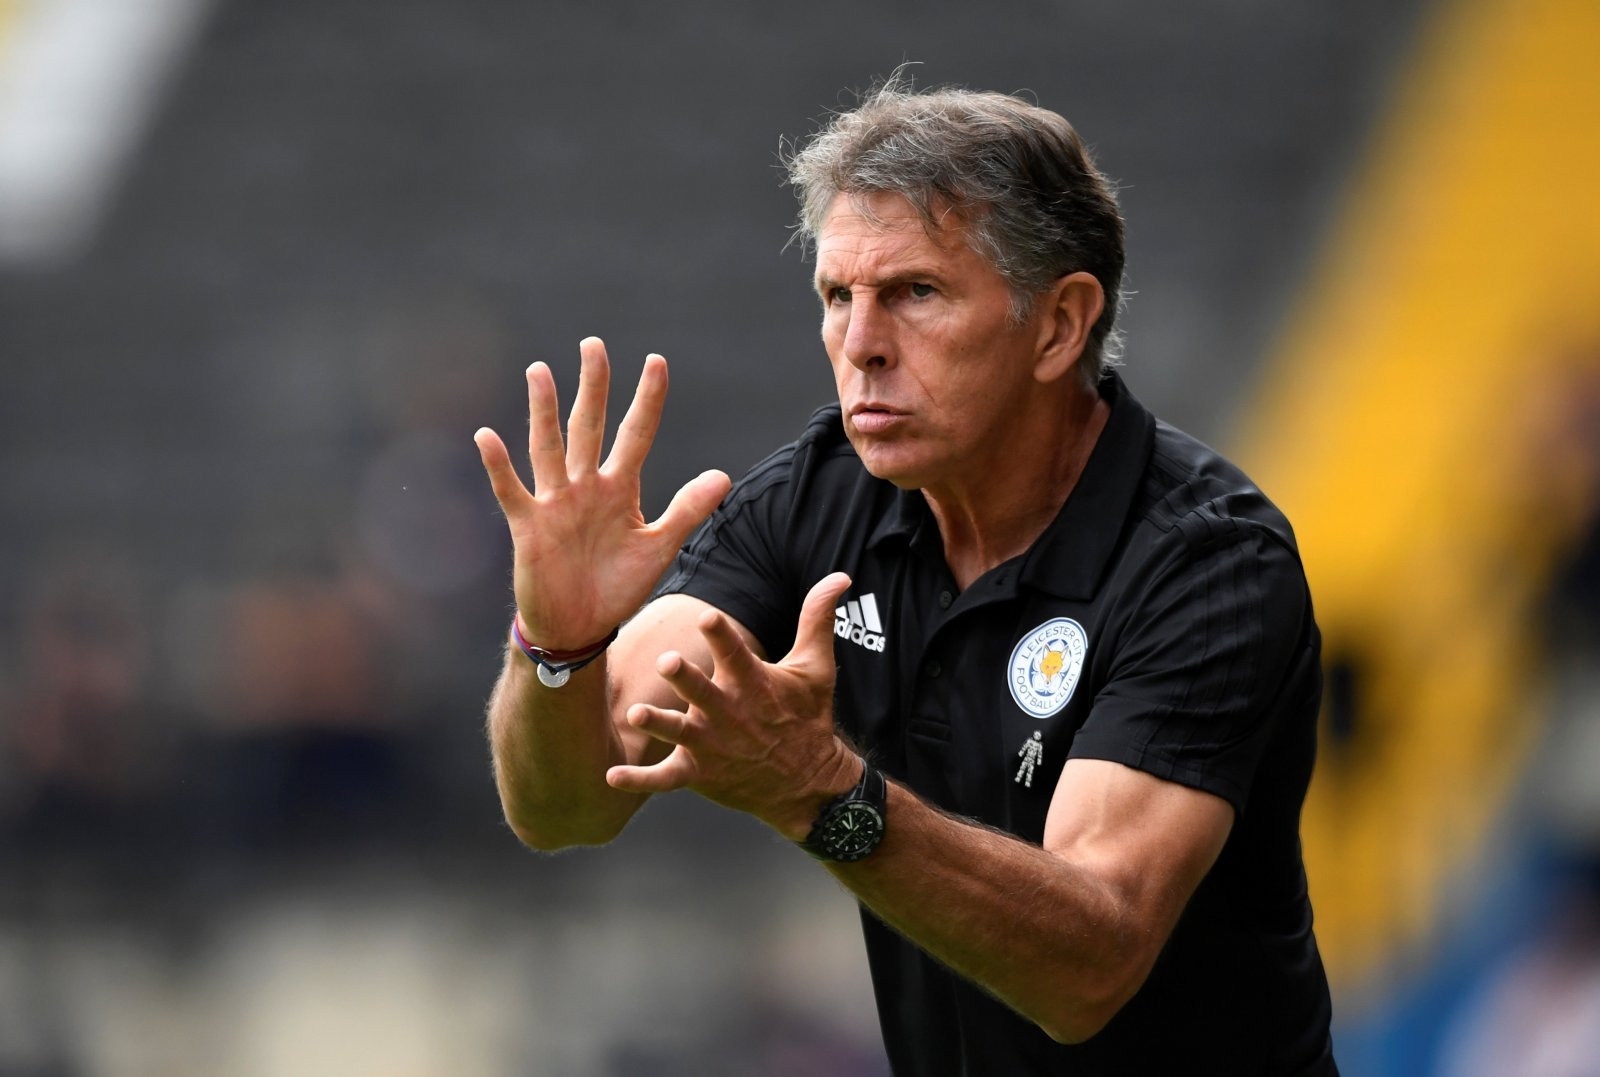 Leicester City fans on Twitter far from impressed with Puel's first year in charge